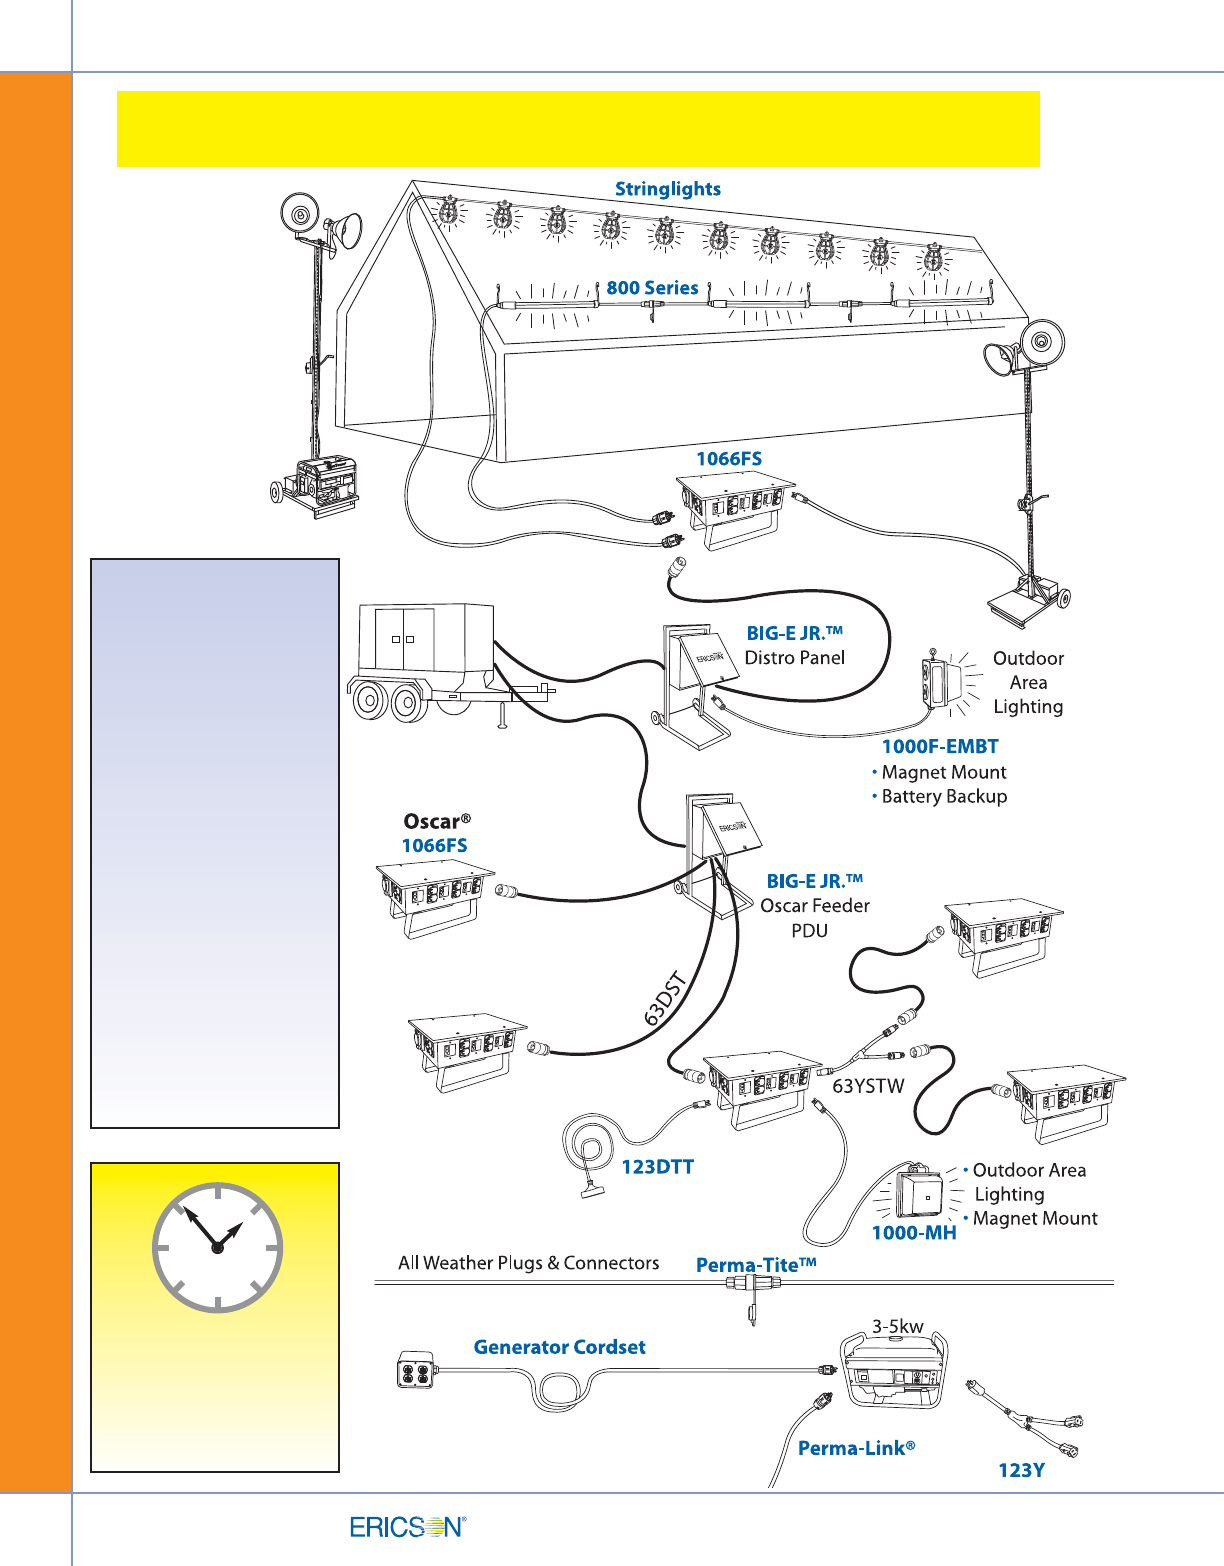 Project1 Brochure Wiring Diagram For Ec2 With Ls1 Coils 20 1 800 Ericson 374 2766 Ericsoncom